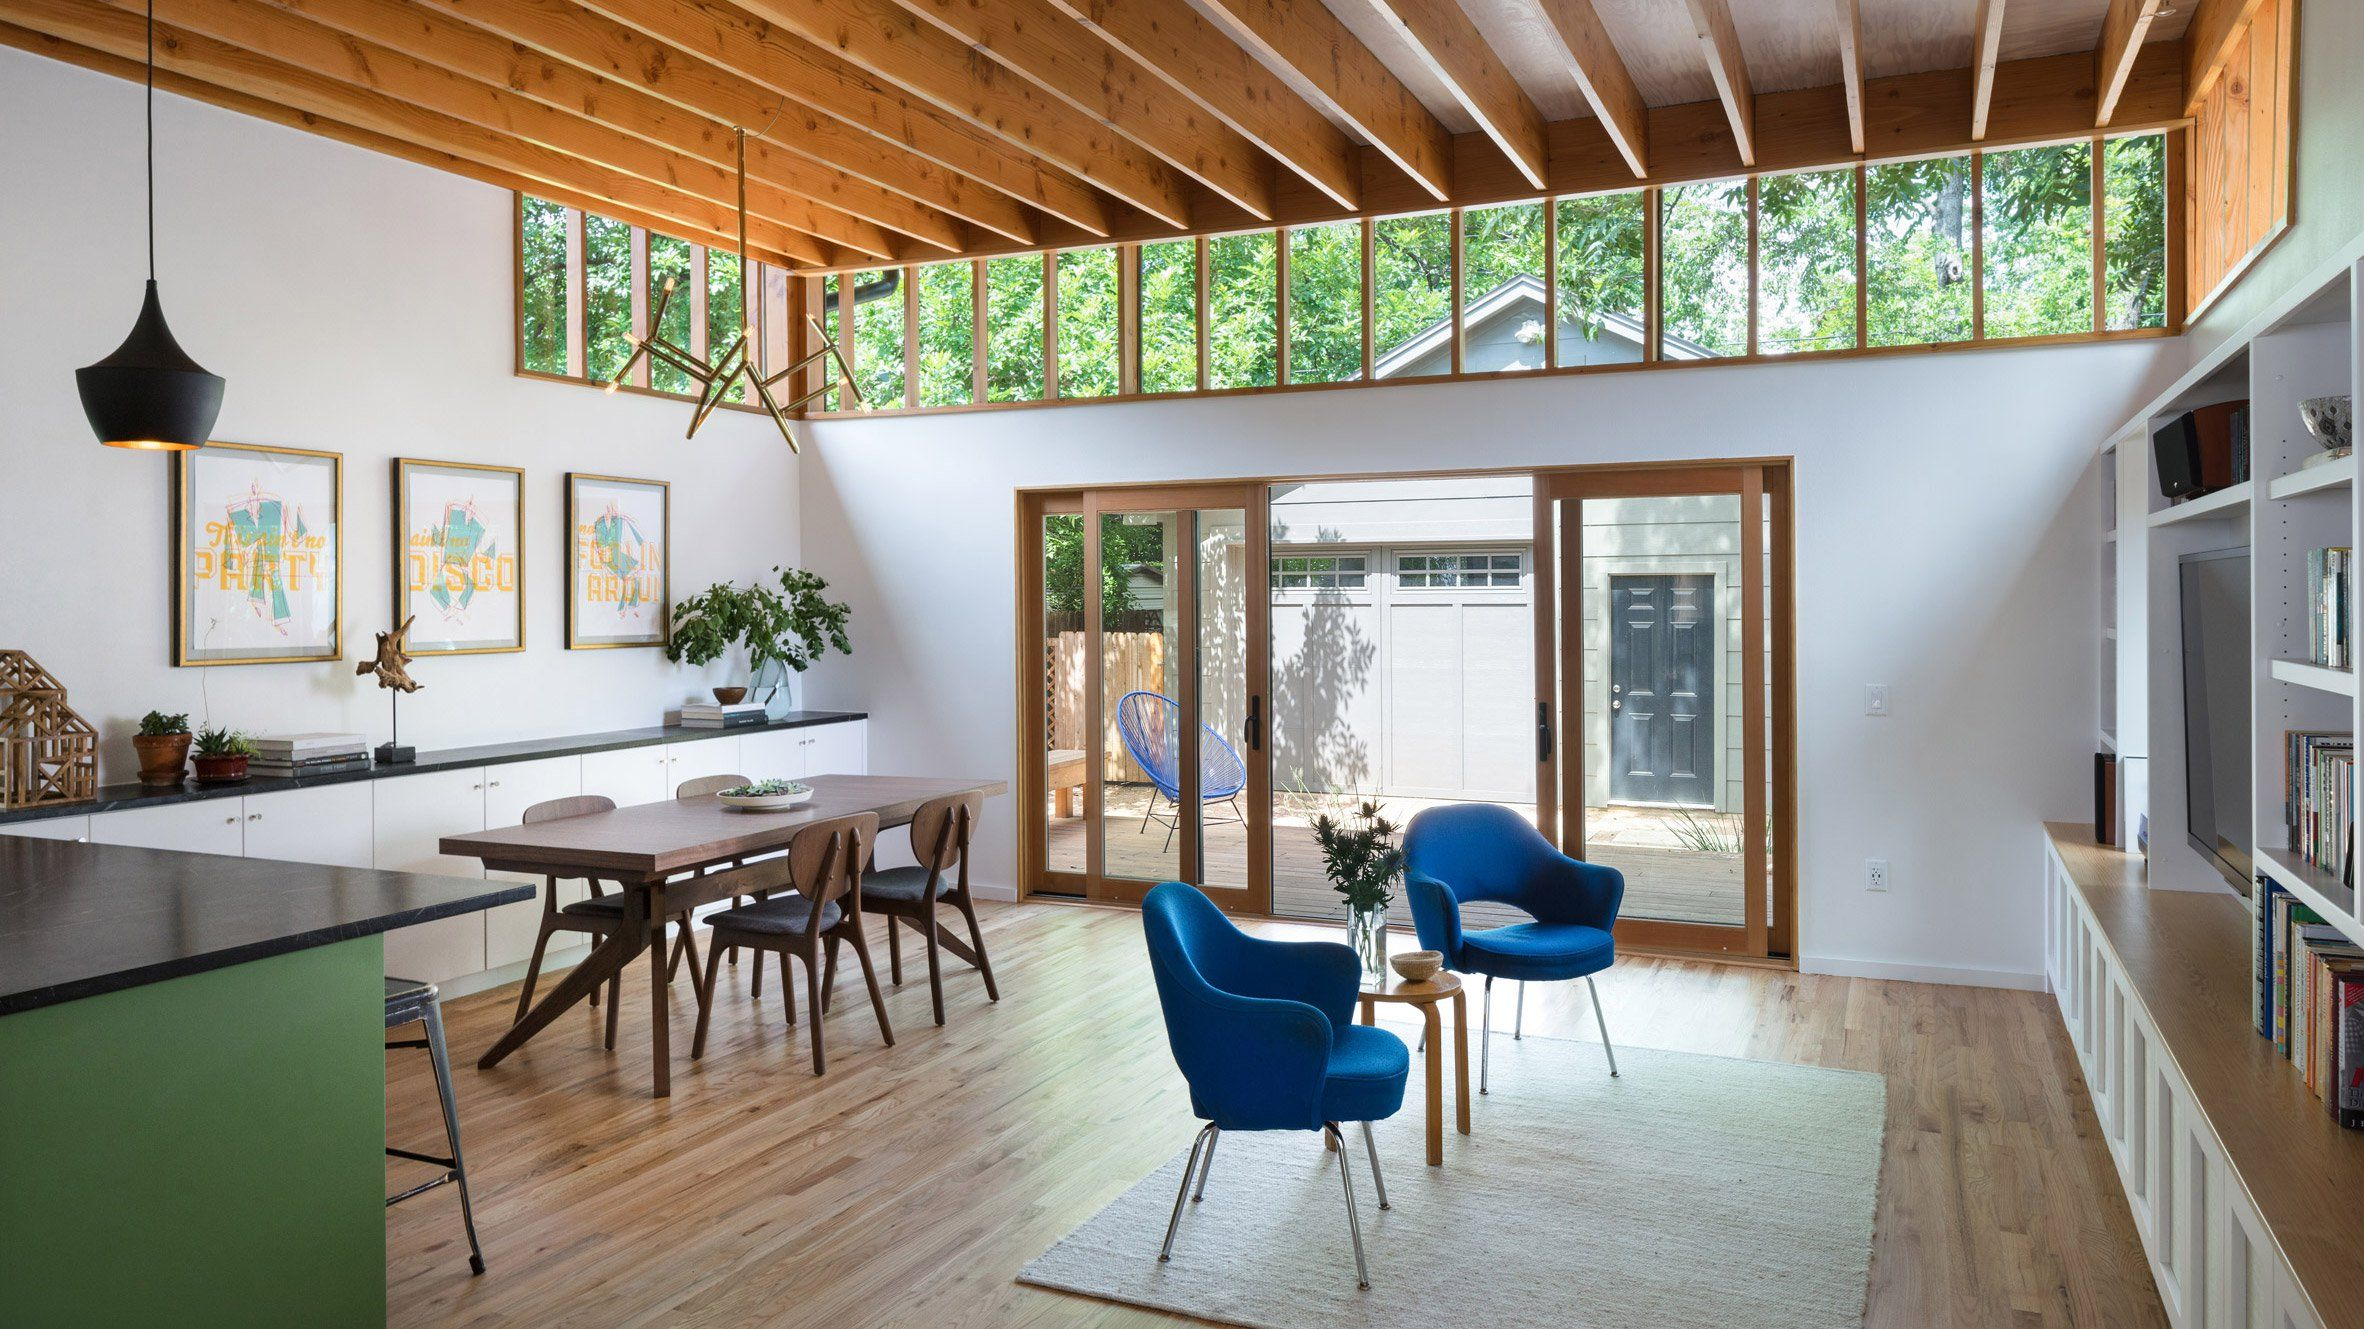 interior design of bungalow houses%0A House    Clerestories bring light into renovated Texas bungalow